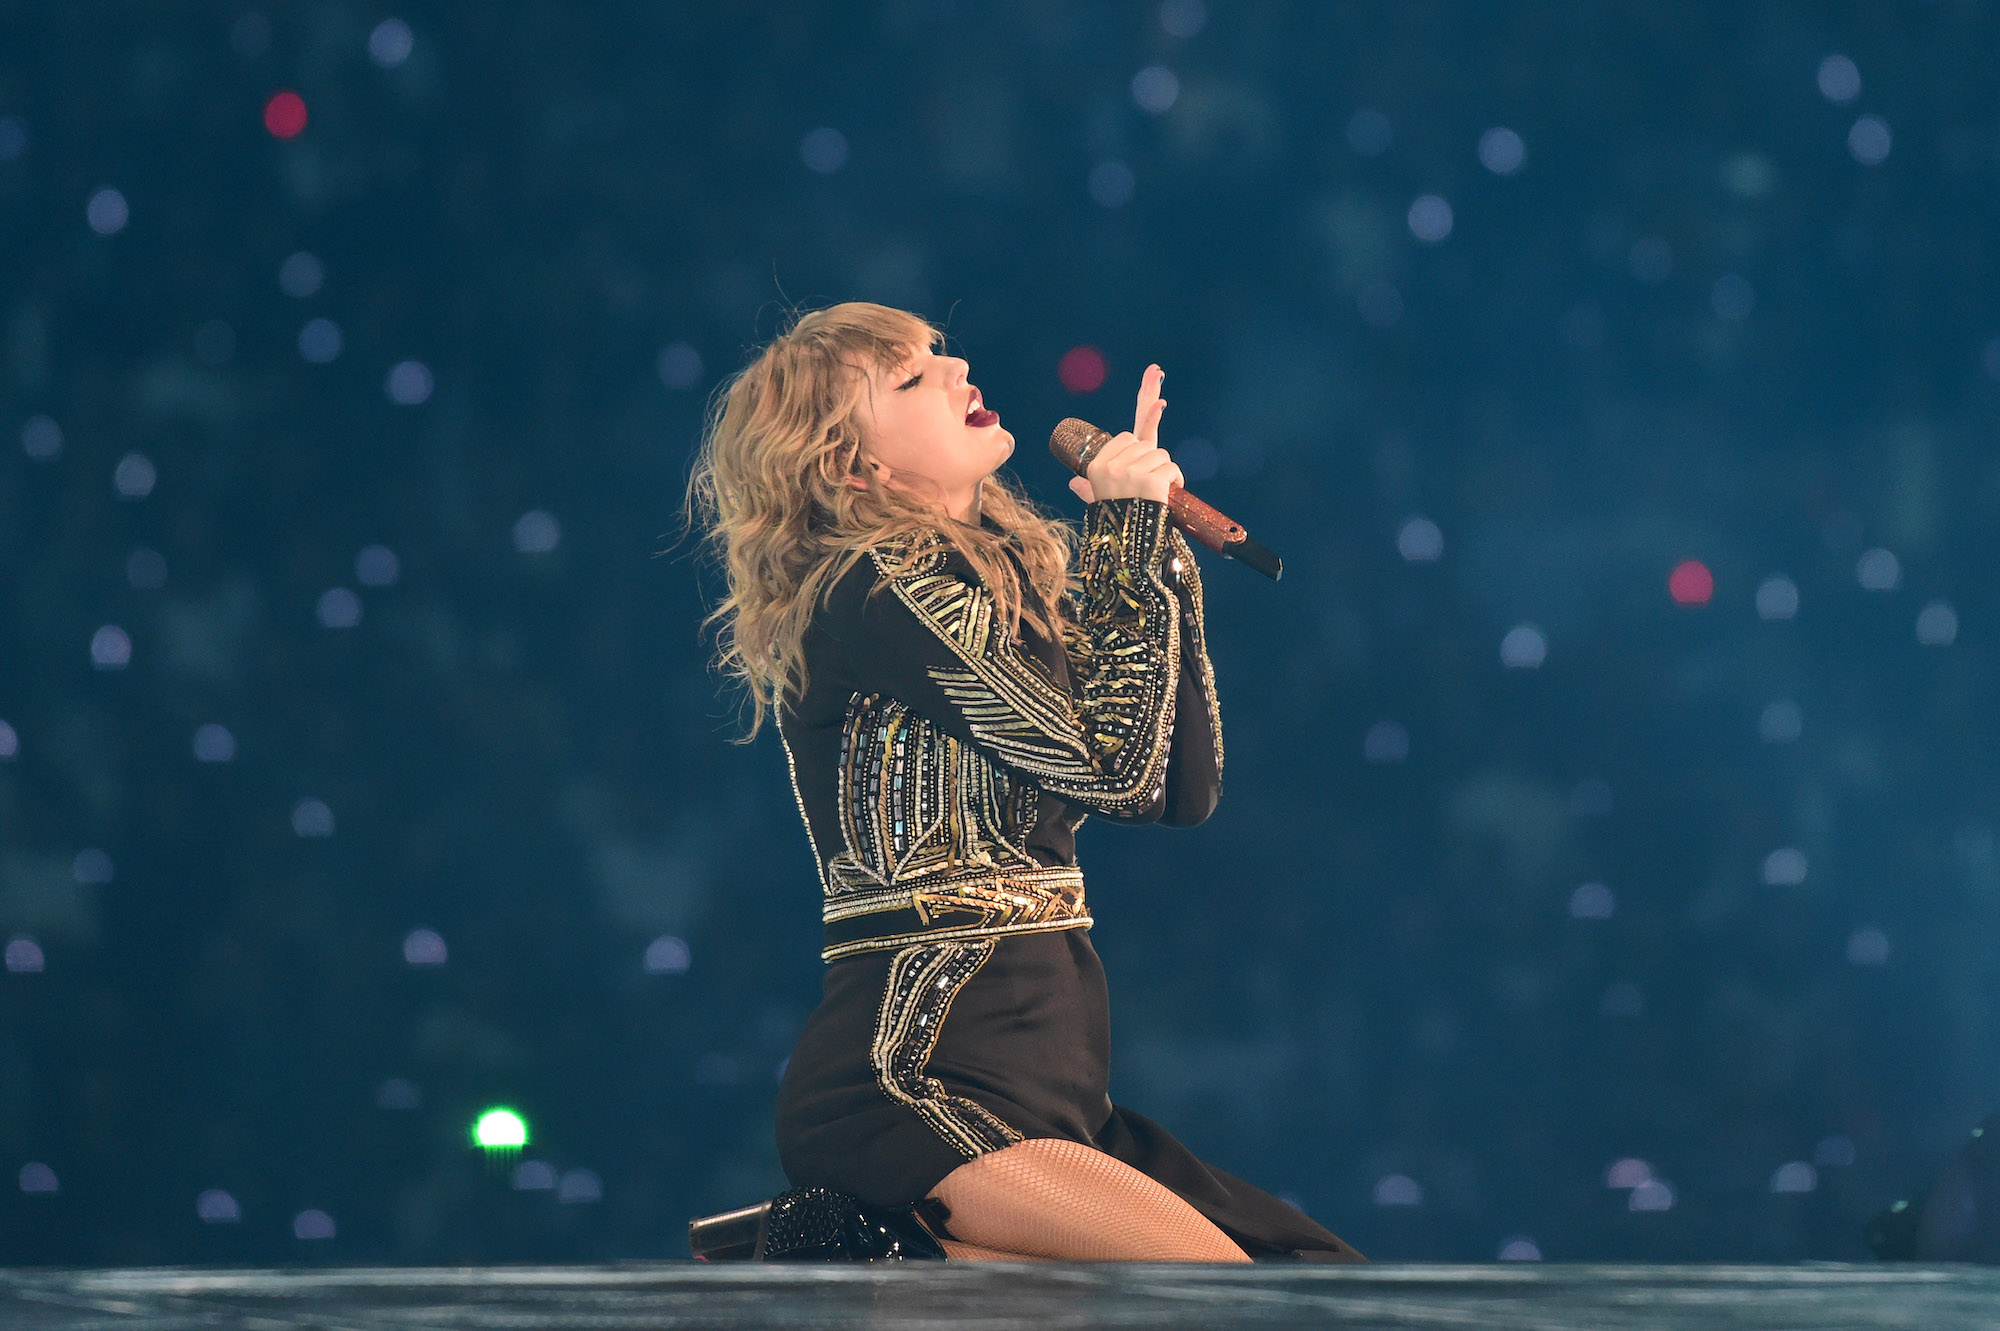 Taylor Swift performs during the 'reputation' Stadium Tour in Japan on Nov. 21, 2018